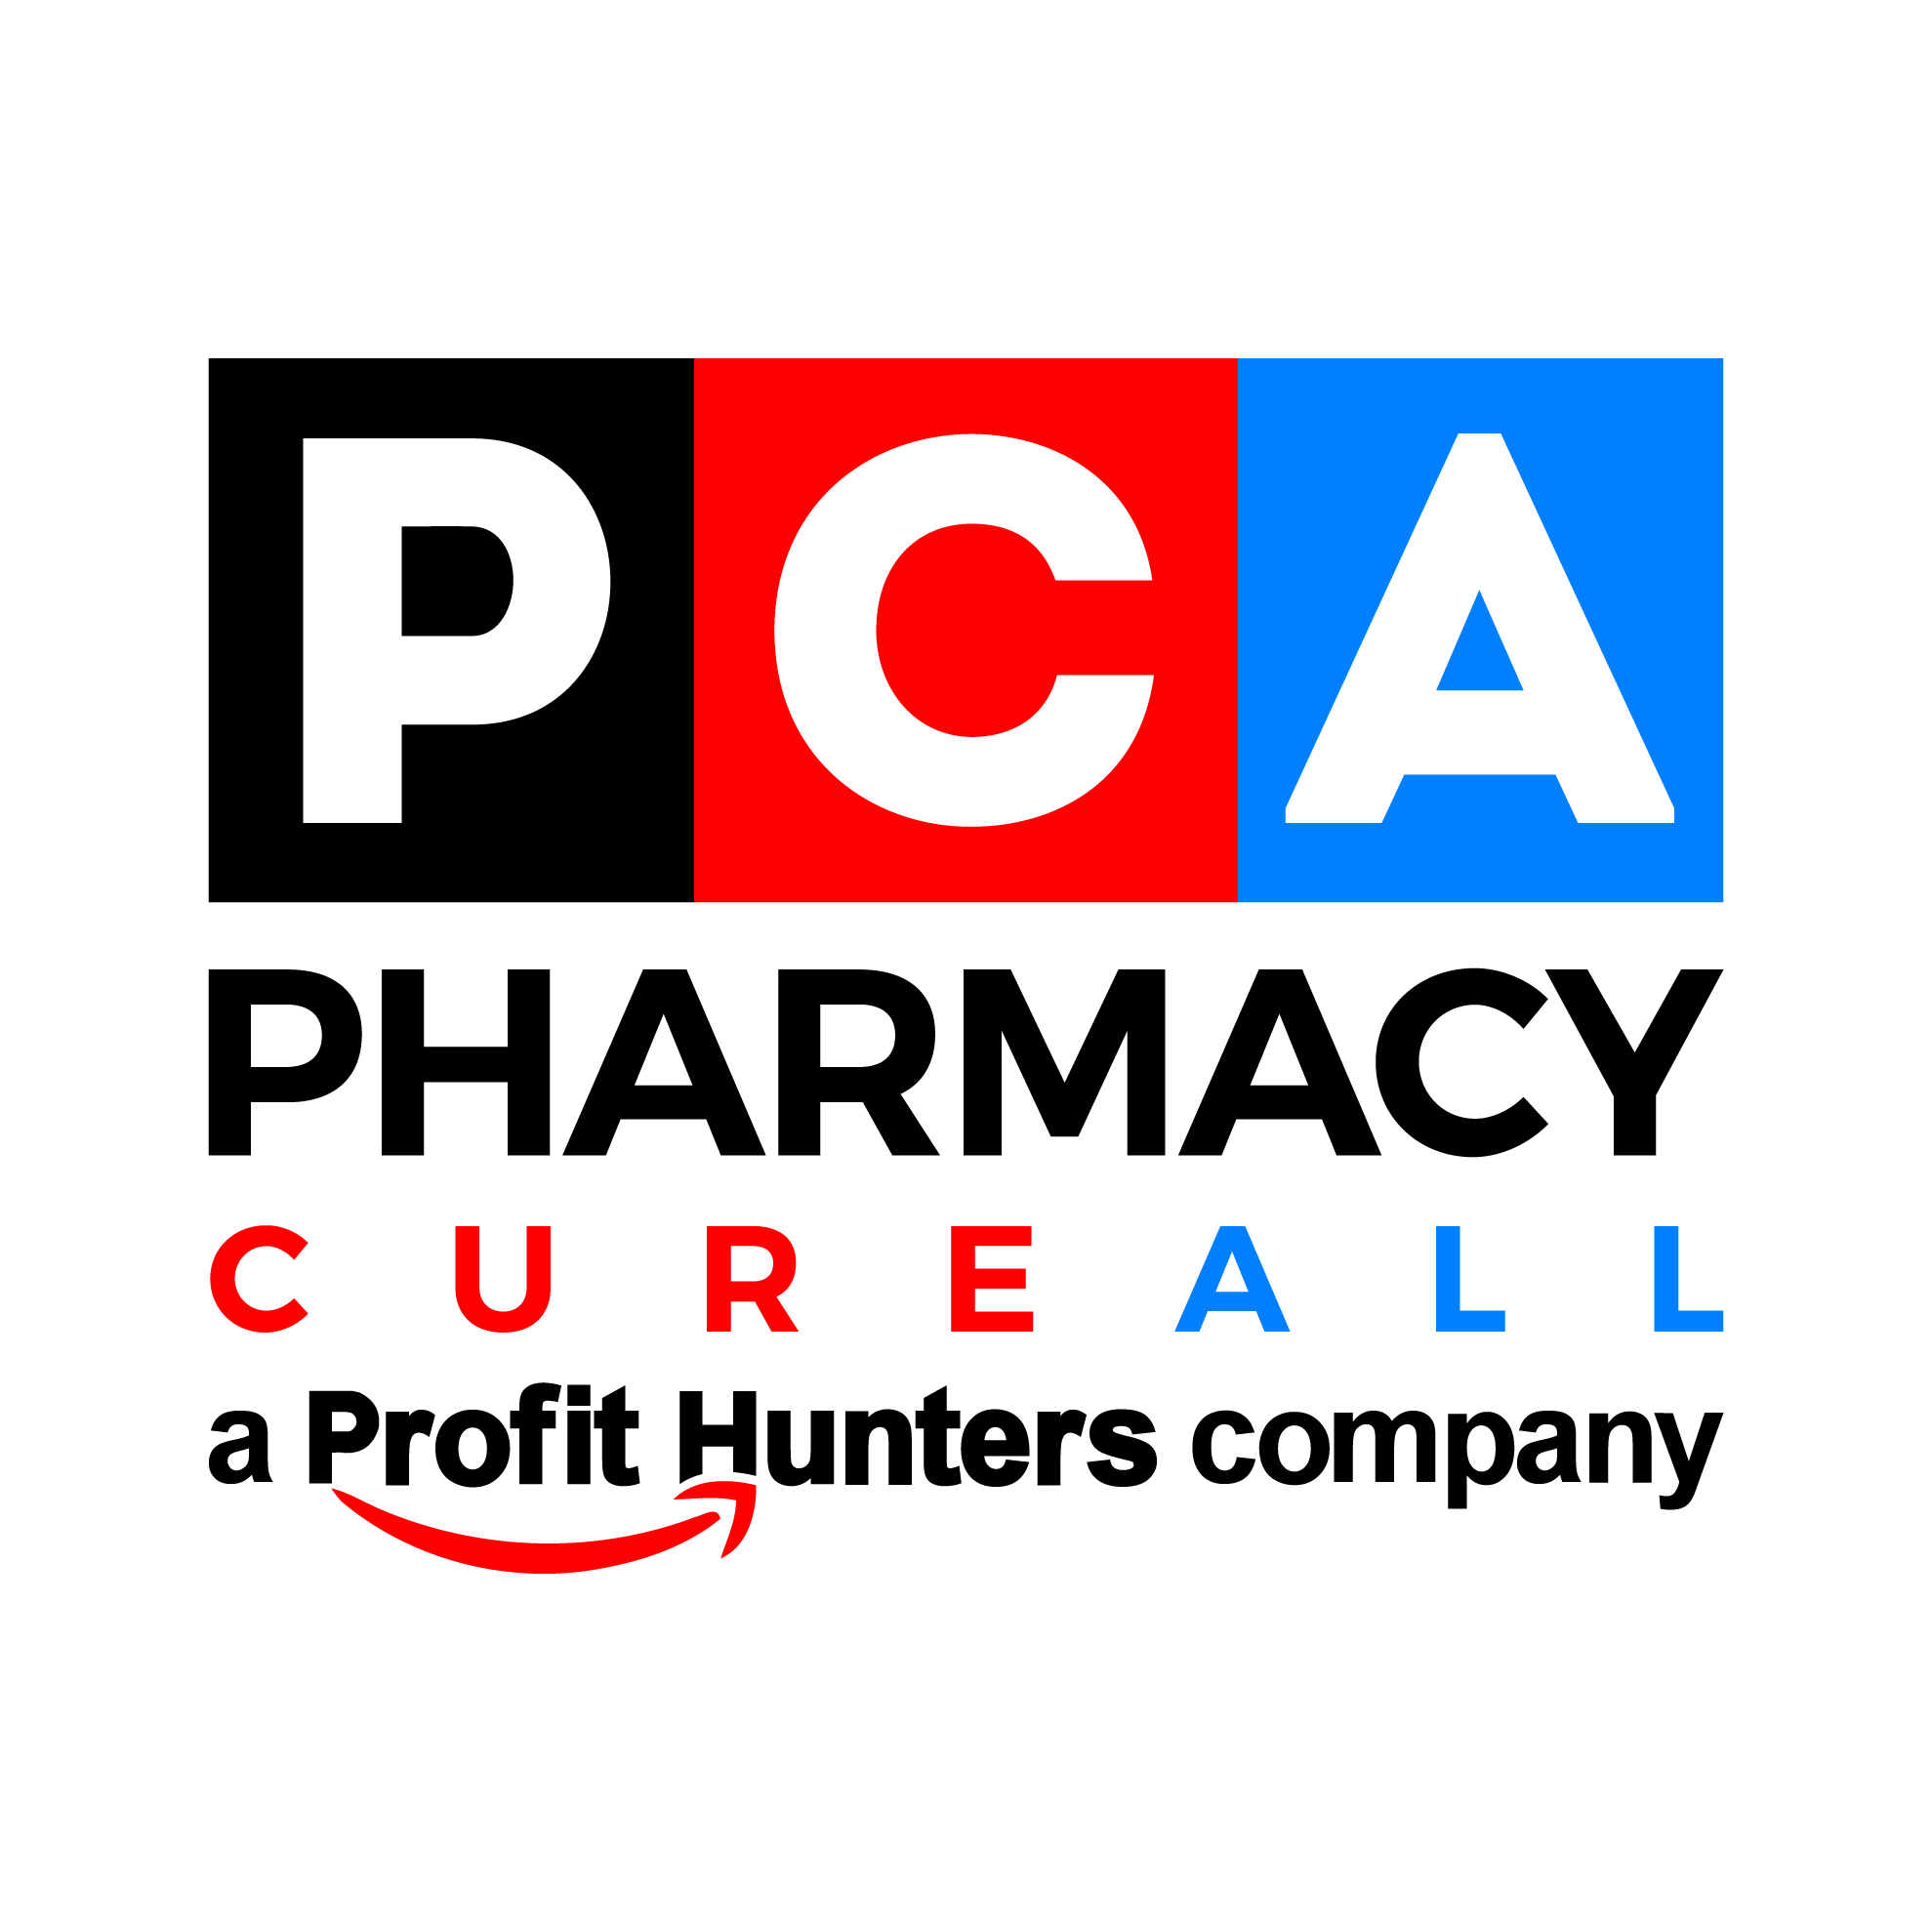 Pharmacy Cure All, LLC